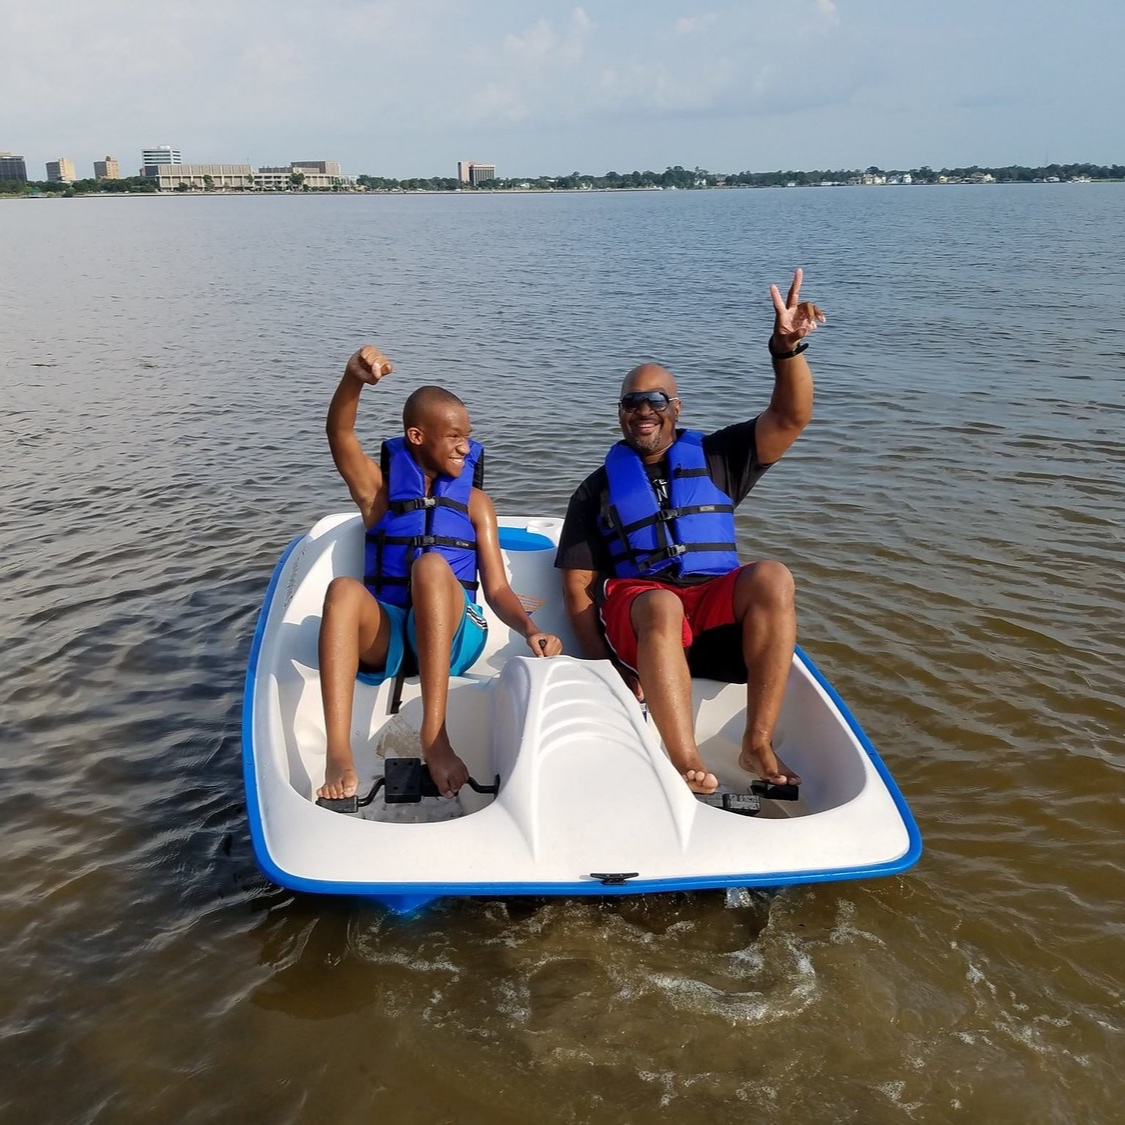 KAYAKS & PADDLE BOATS - RENTAL RATES:2 HOUR - $354 HOUR - $408 HOUR - $50+ $20 delivery fee unless you pick up. We can hand them over to you at one of three  locations: Prien Lake Park Boat Launch, 210 Boat Launch or the I-10 Beach. Need them delivered to another location? Give us a call!